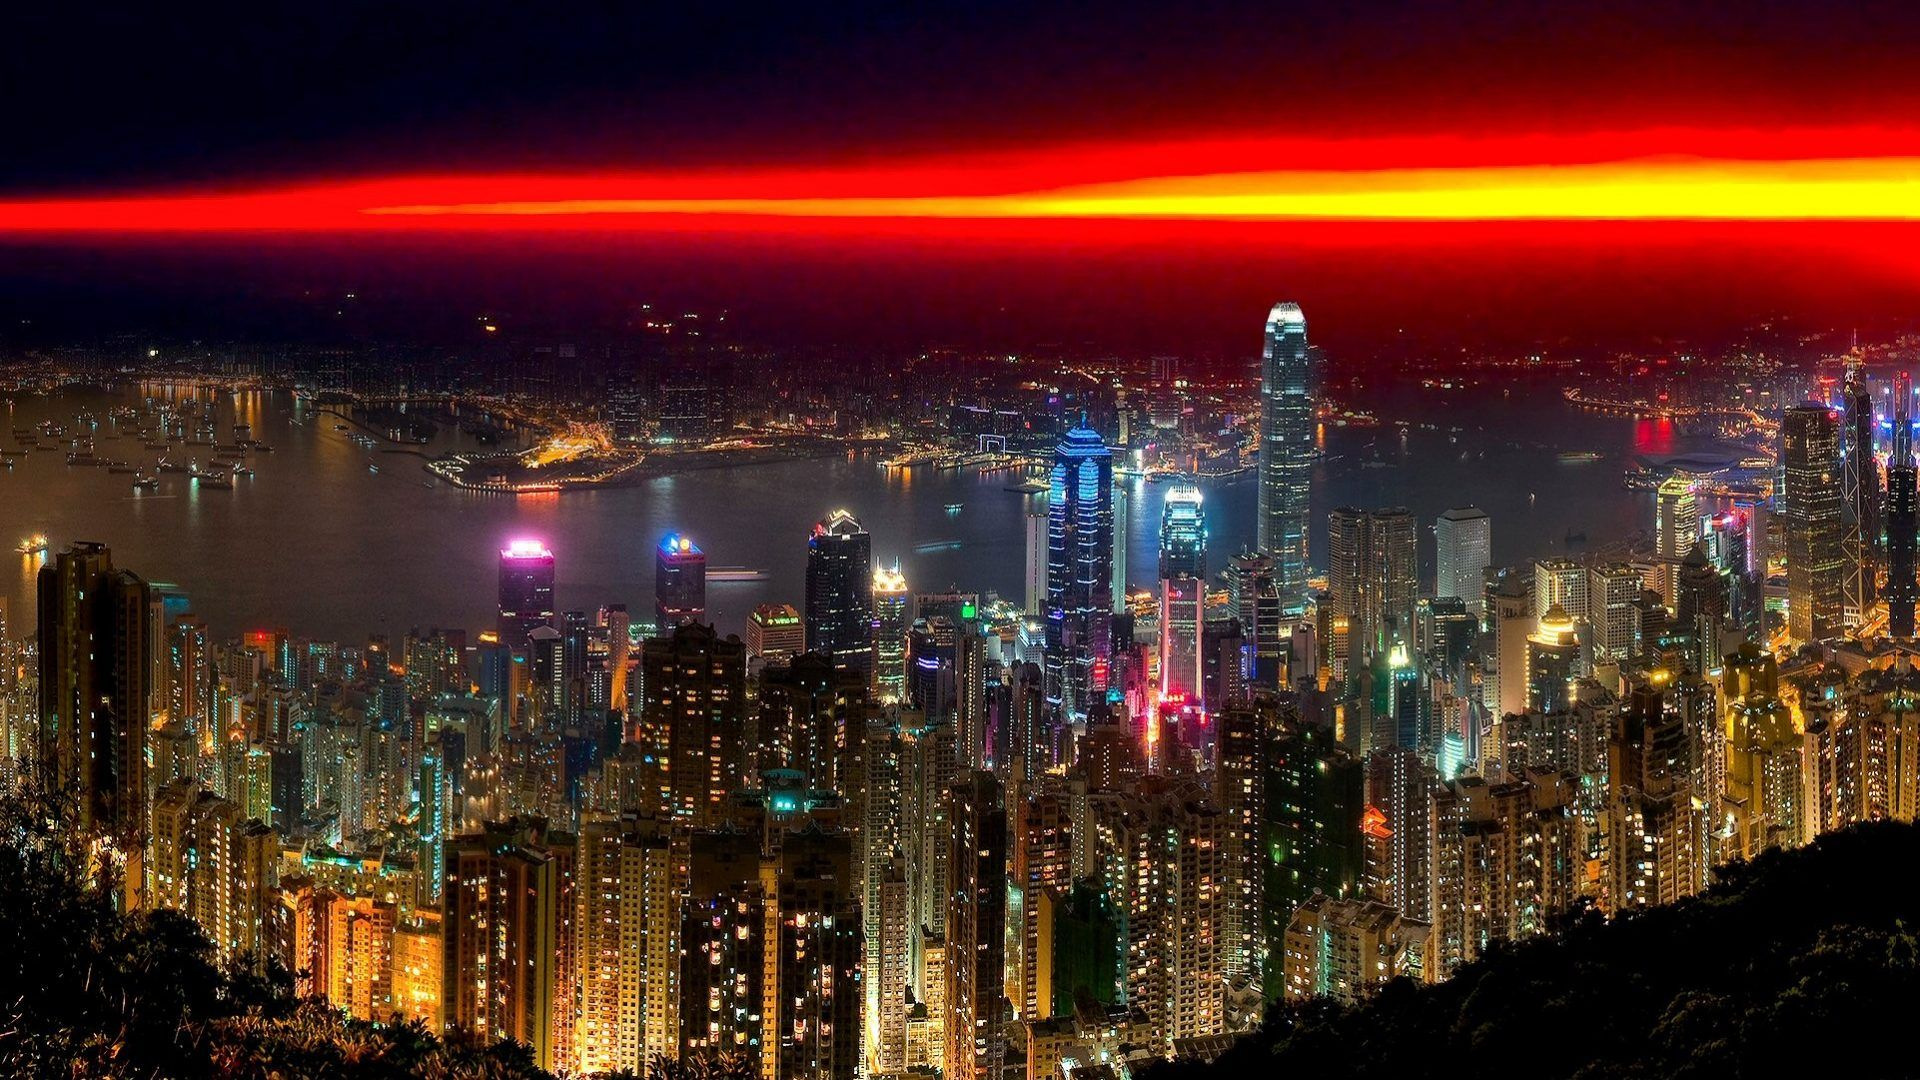 Hong Kong Sunset China City Lights Night Hd Background City Wallpaper City Night City